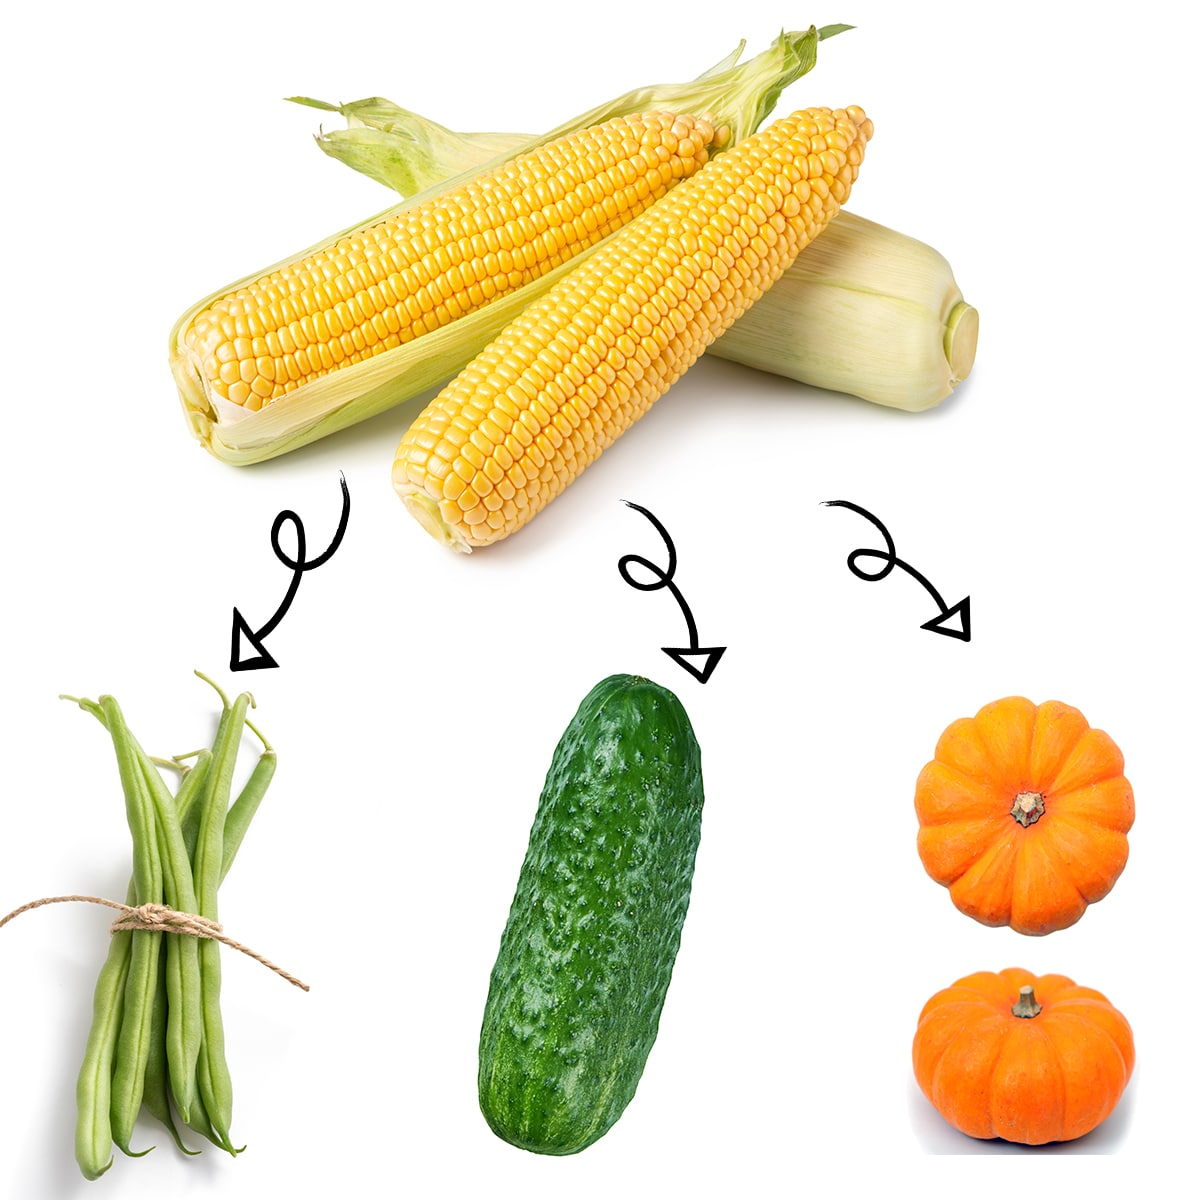 Bright white graphic of three peeled ears of corn with arrows linking it to a bundle of green beans, a ripe cucumber, and bright orange mini pumpkins.